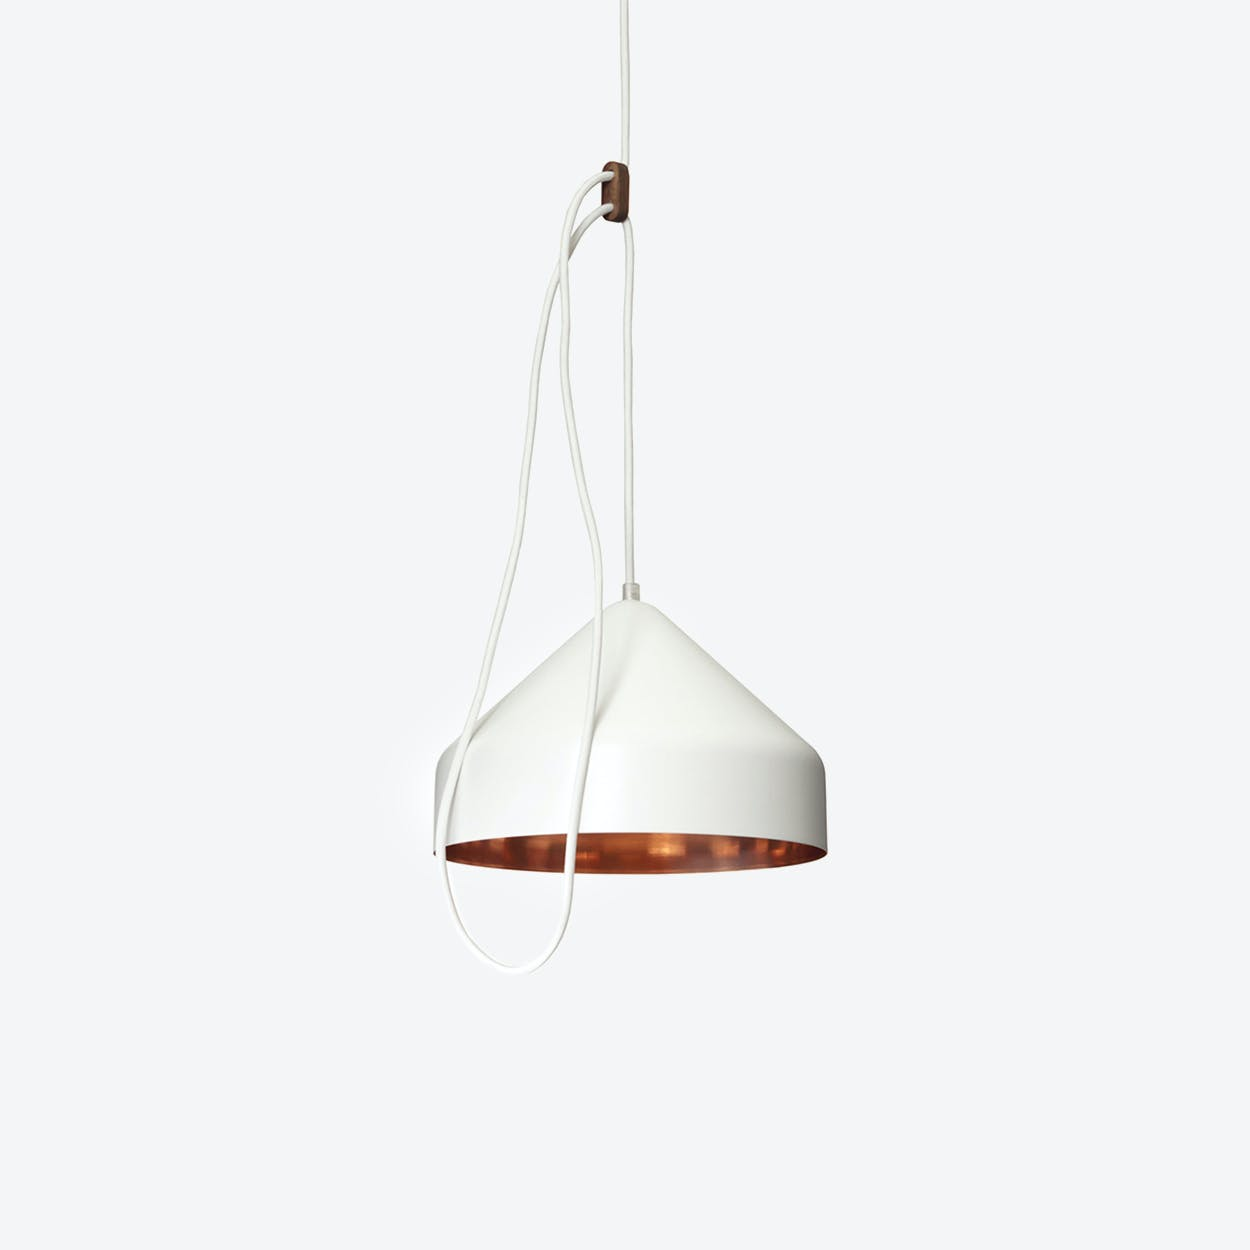 Lloop Pendant Lamp in Copper & White